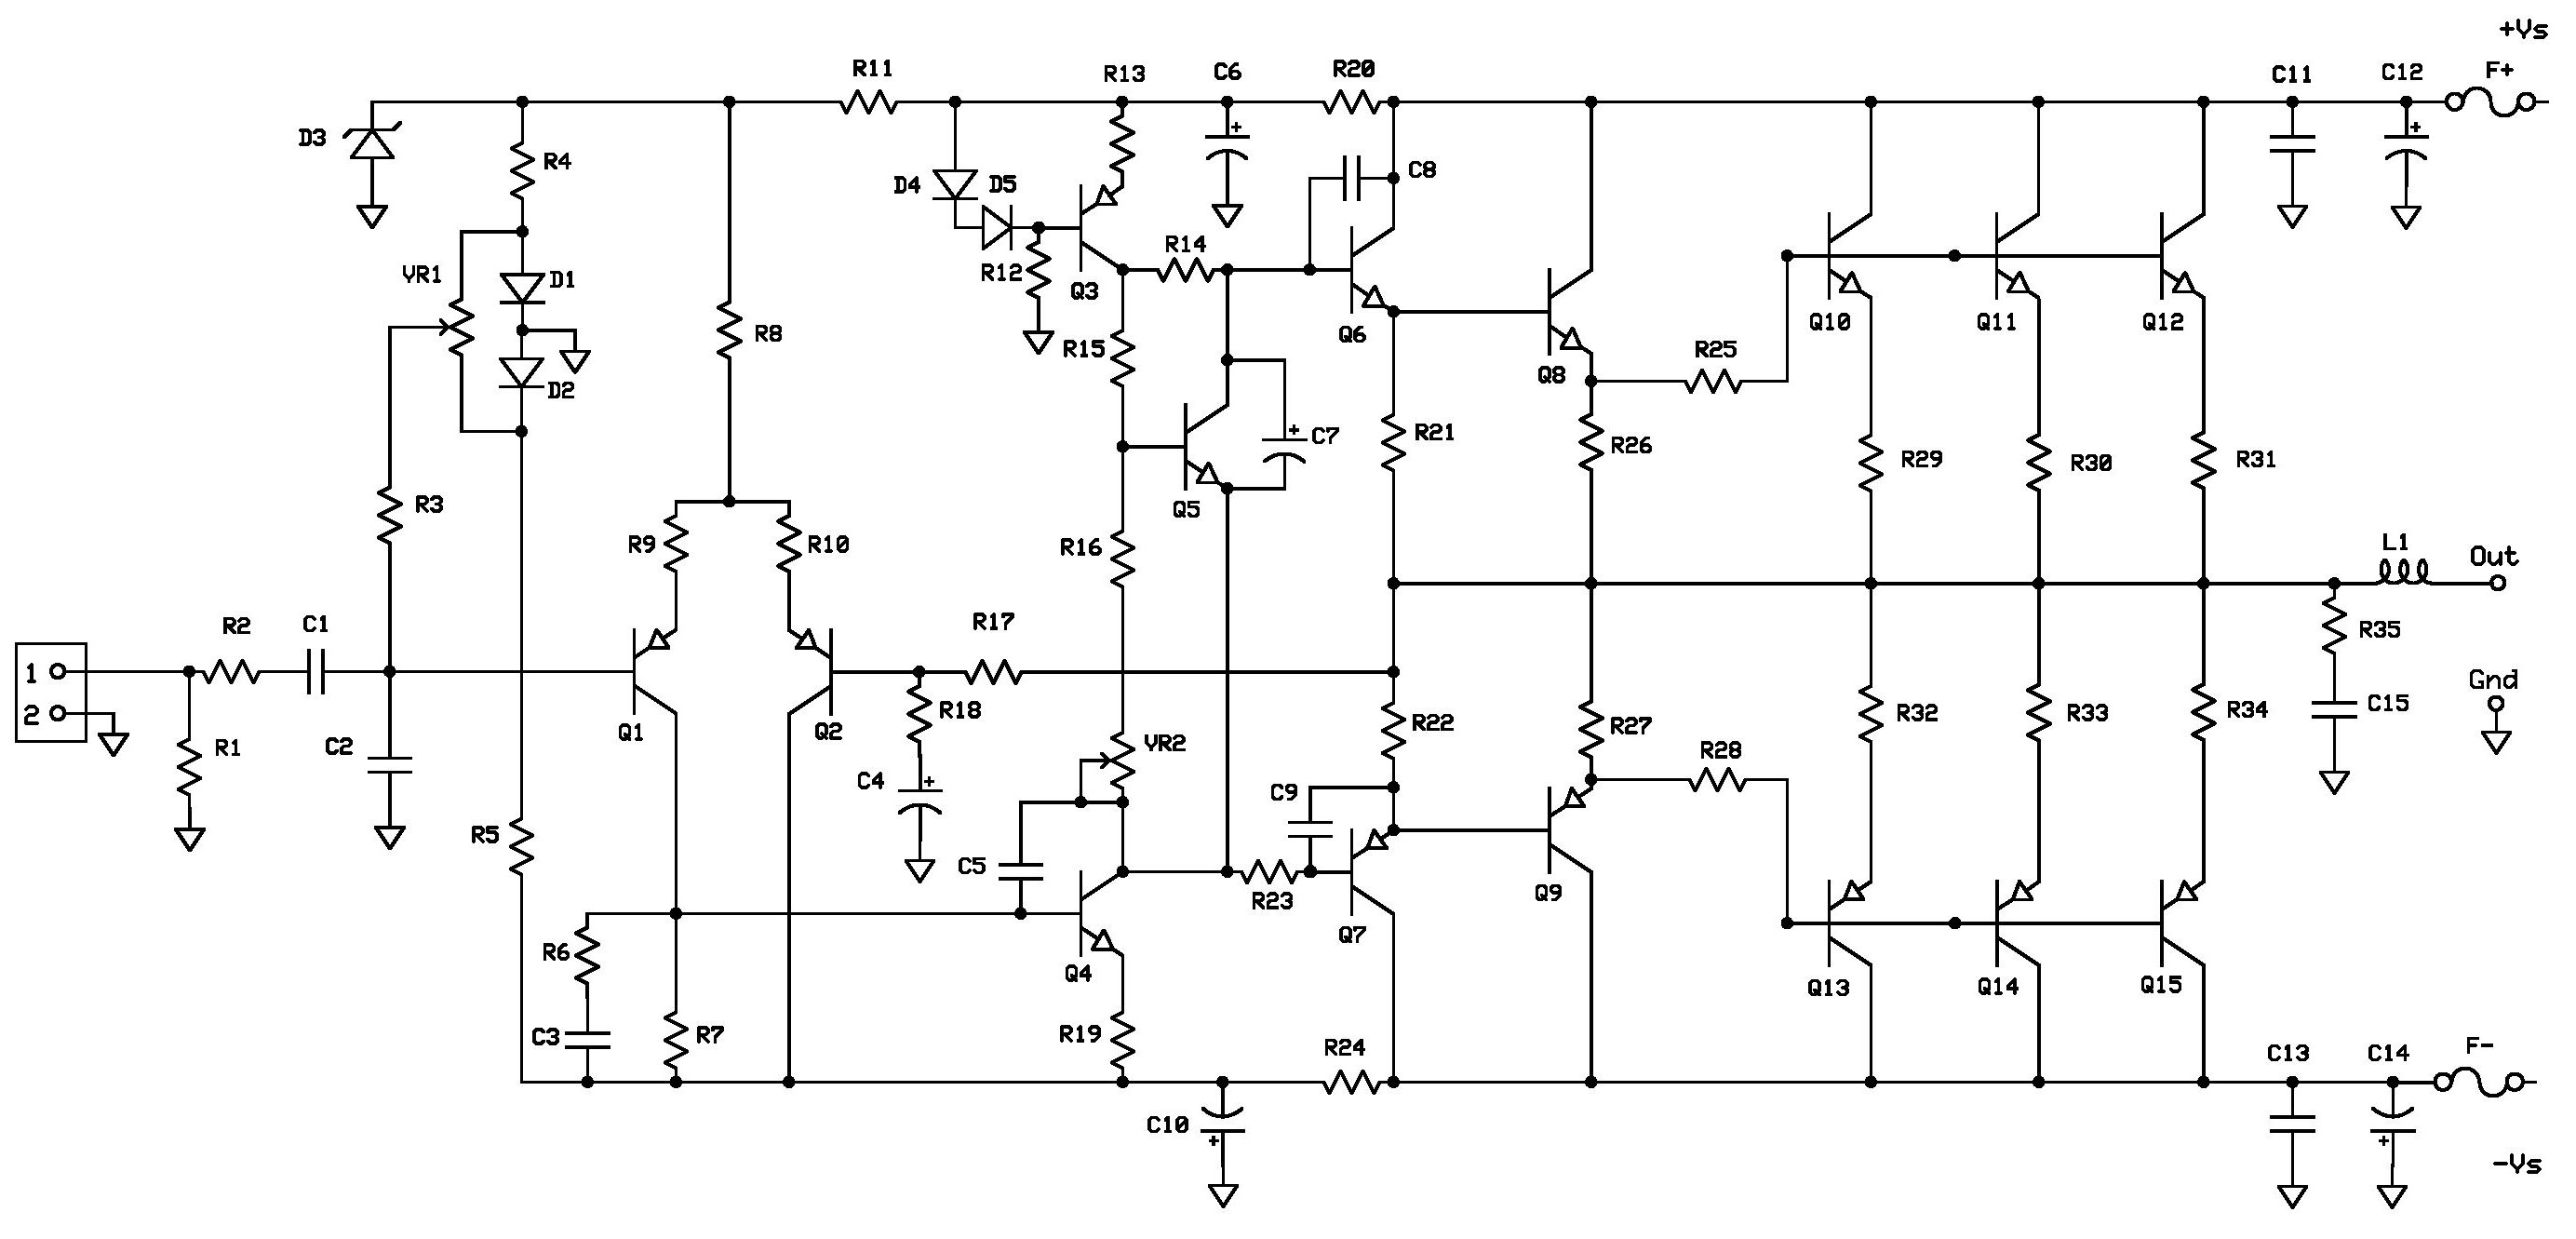 T Amp Circuit Diagram Wiring Library Simple Audio Using Lm386 Project2 Schematic Page 001